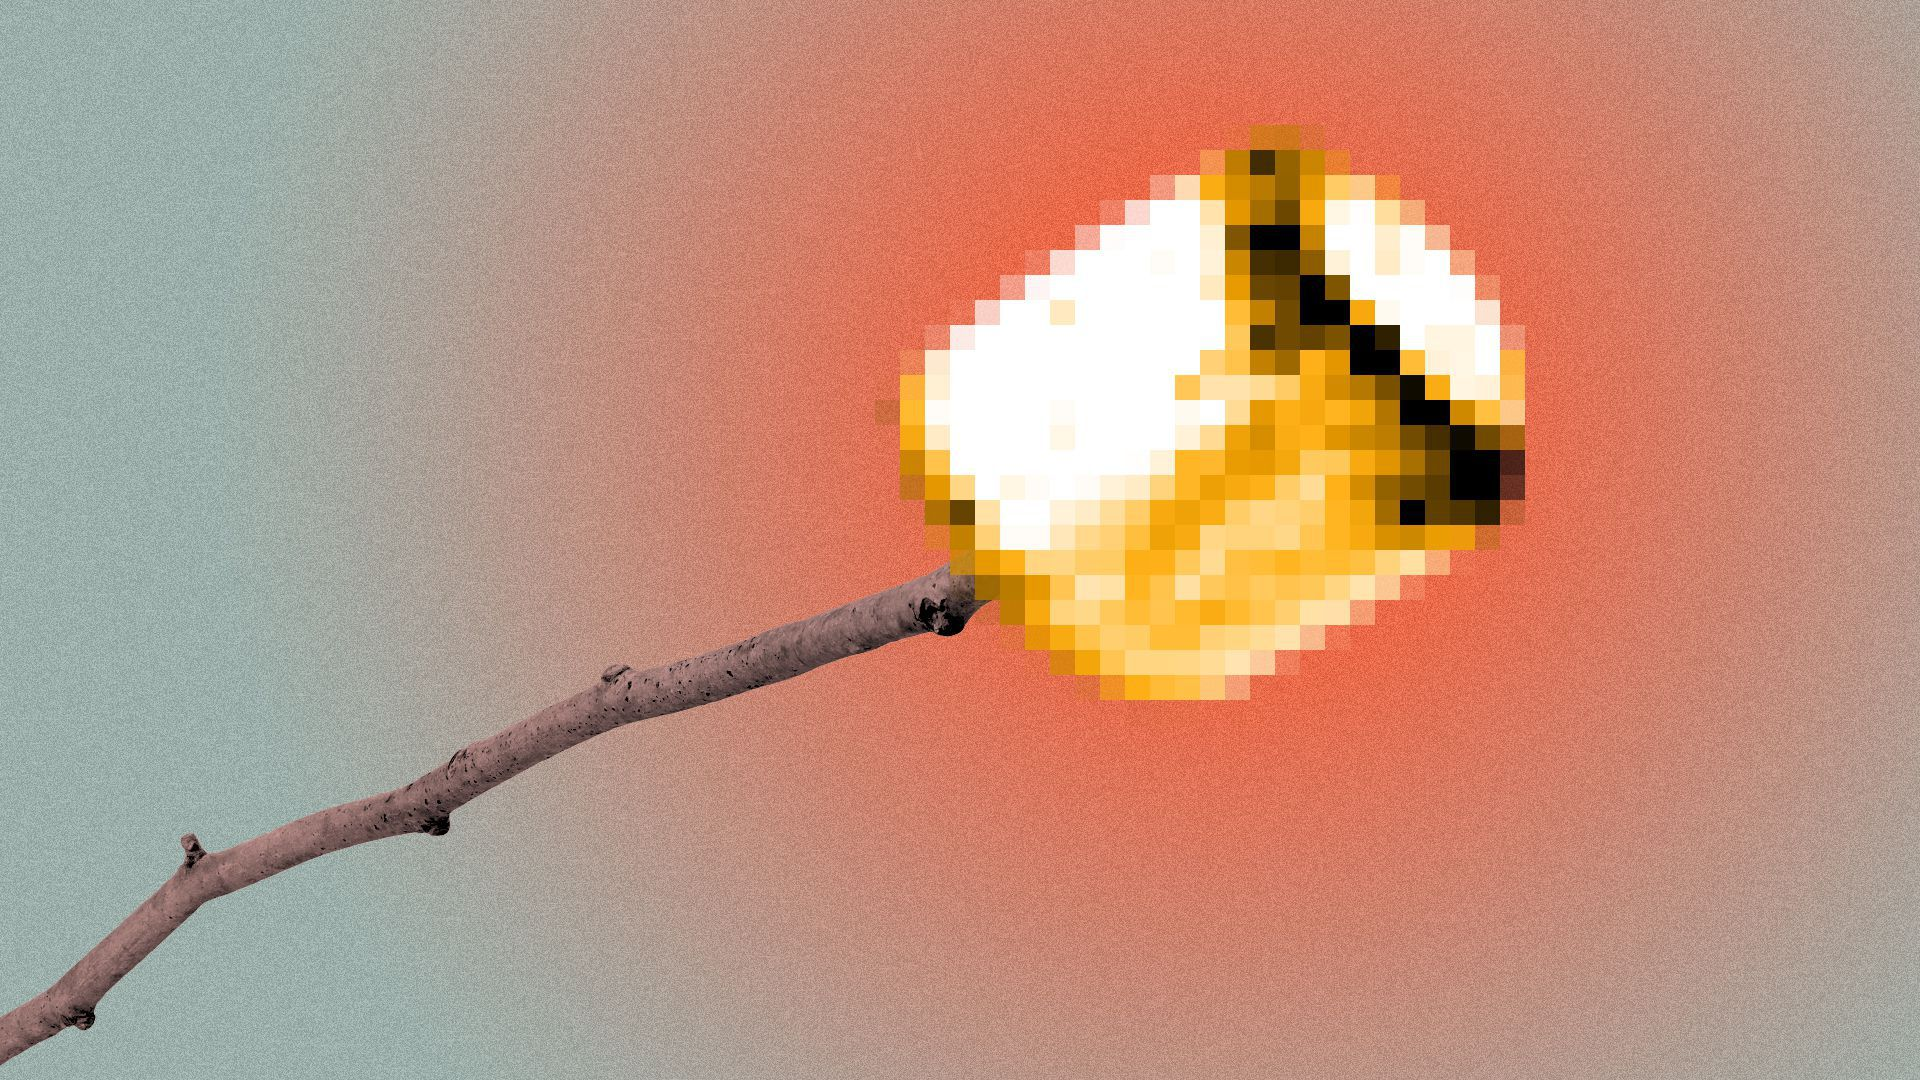 Illustration of a pixelated marshmallow roasting on a stick.